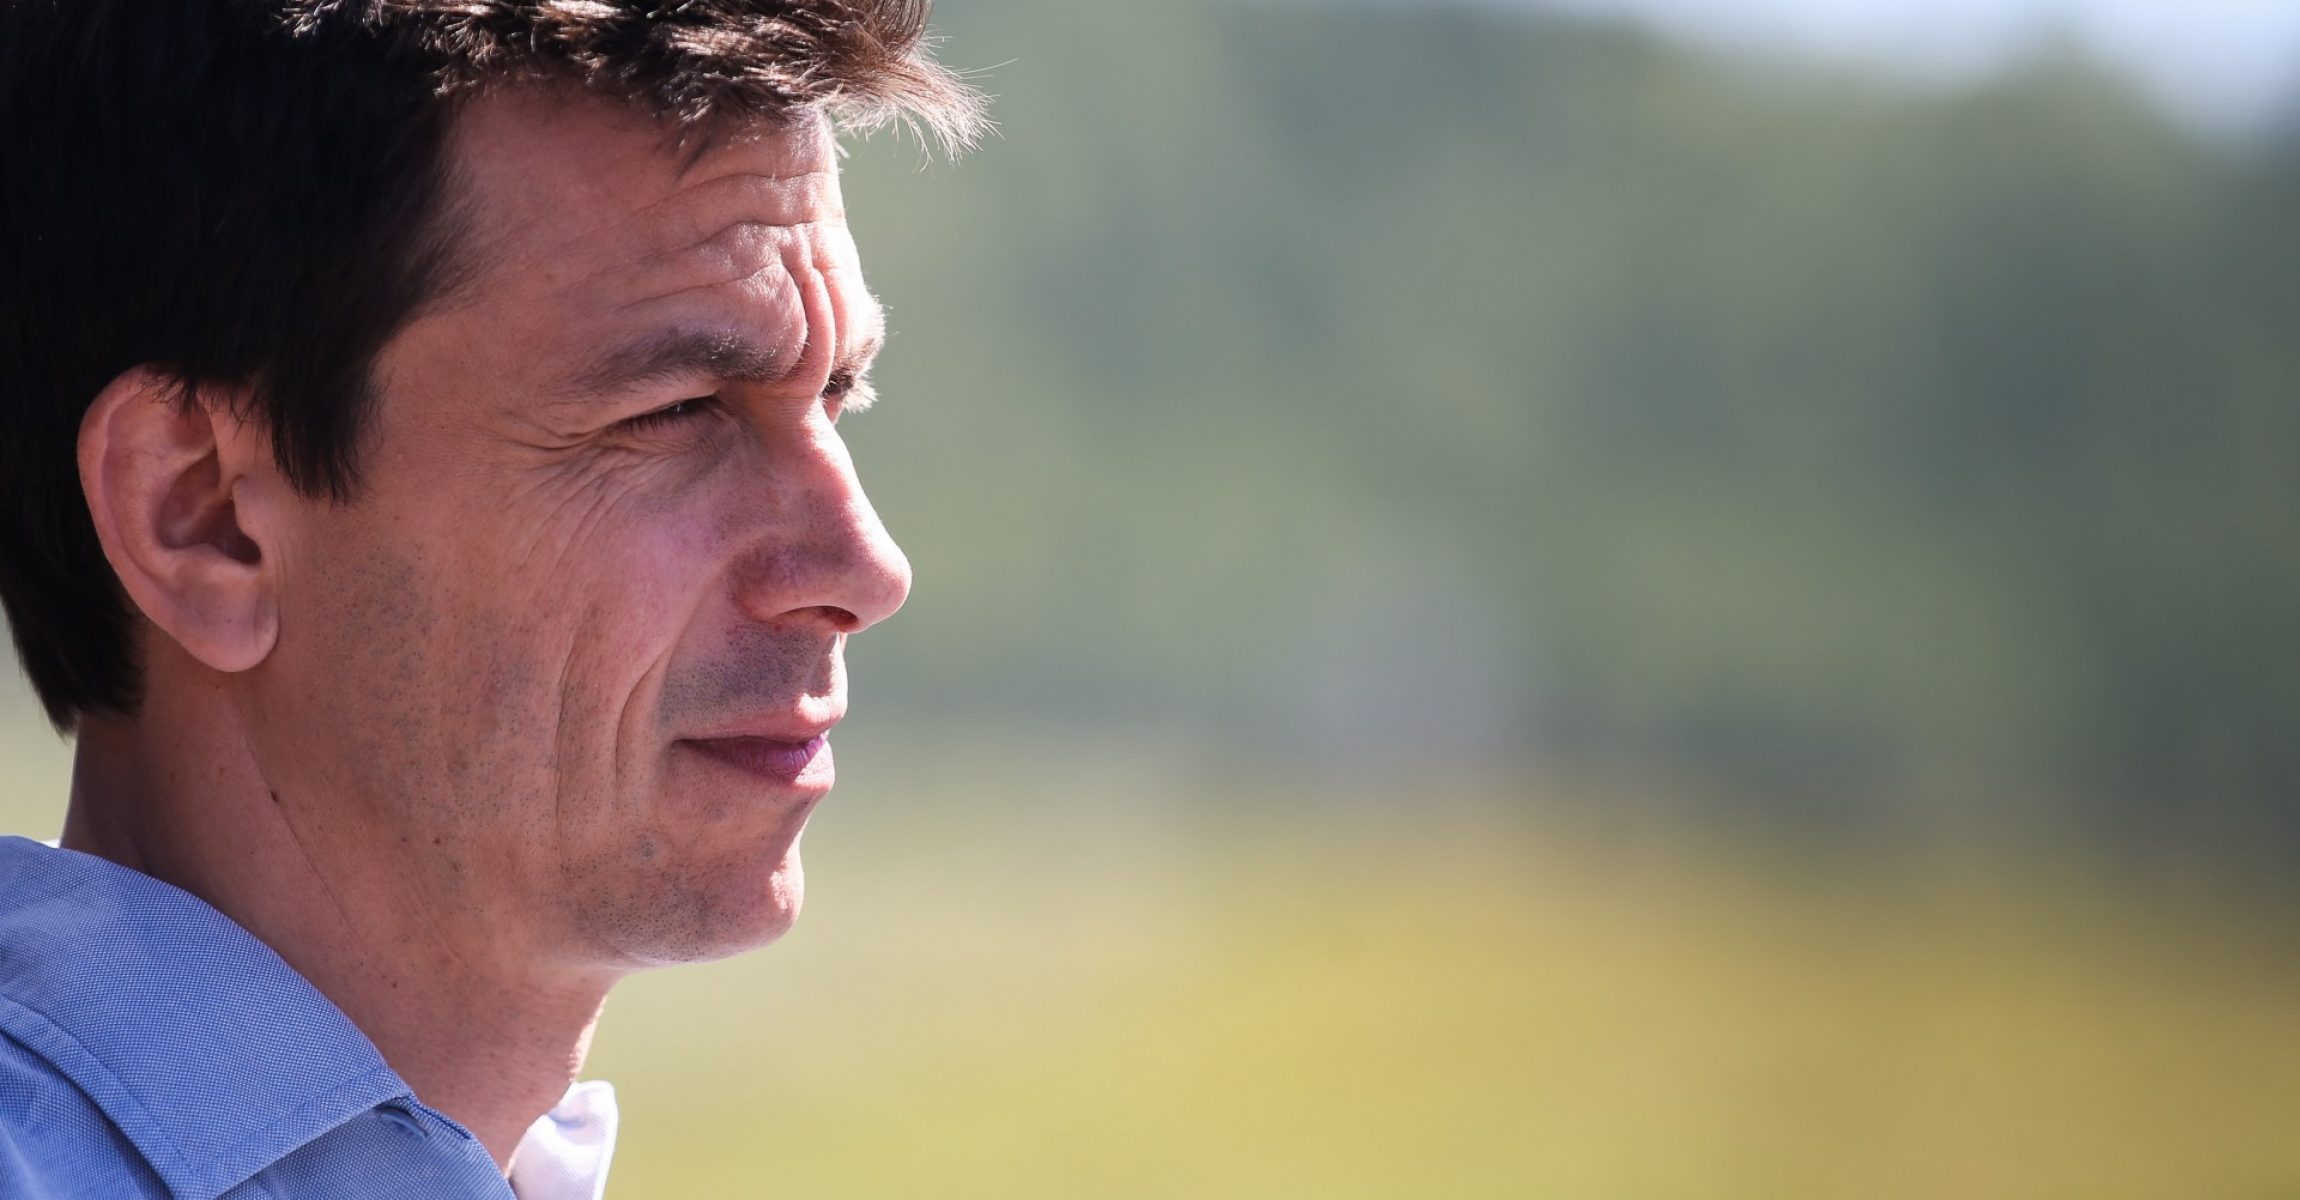 SPIELBERG,AUSTRIA,06.JUL.17 - MOTORSPORTS, FORMULA 1 - Grand Prix of Austria, Red Bull Ring, preview. Image shows executive director Toto Wolff (Mercedes). Photo: GEPA pictures/ Daniel Goetzhaber - For editorial use only. Image is free of charge.